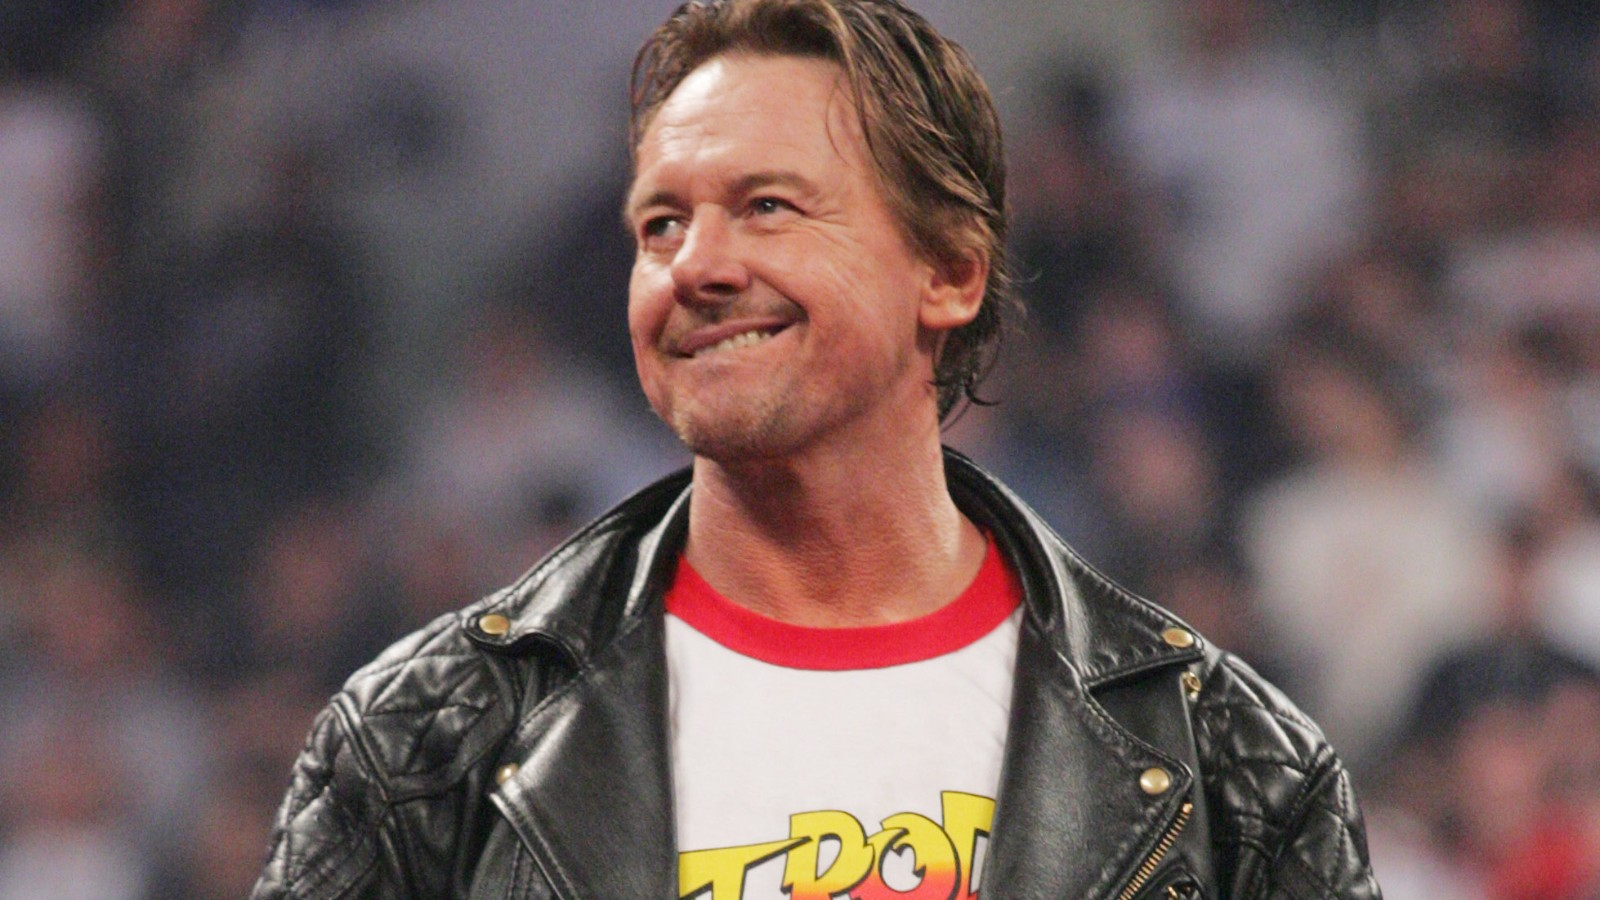 WWE WrestleMania 21 'WrestleMania Goes Hollywood' Credit: J. Shearer / Contributor Caption:'Rowdy' Roddy Piper (Photo by John Shearer/WireImage for BWR Public Relations)